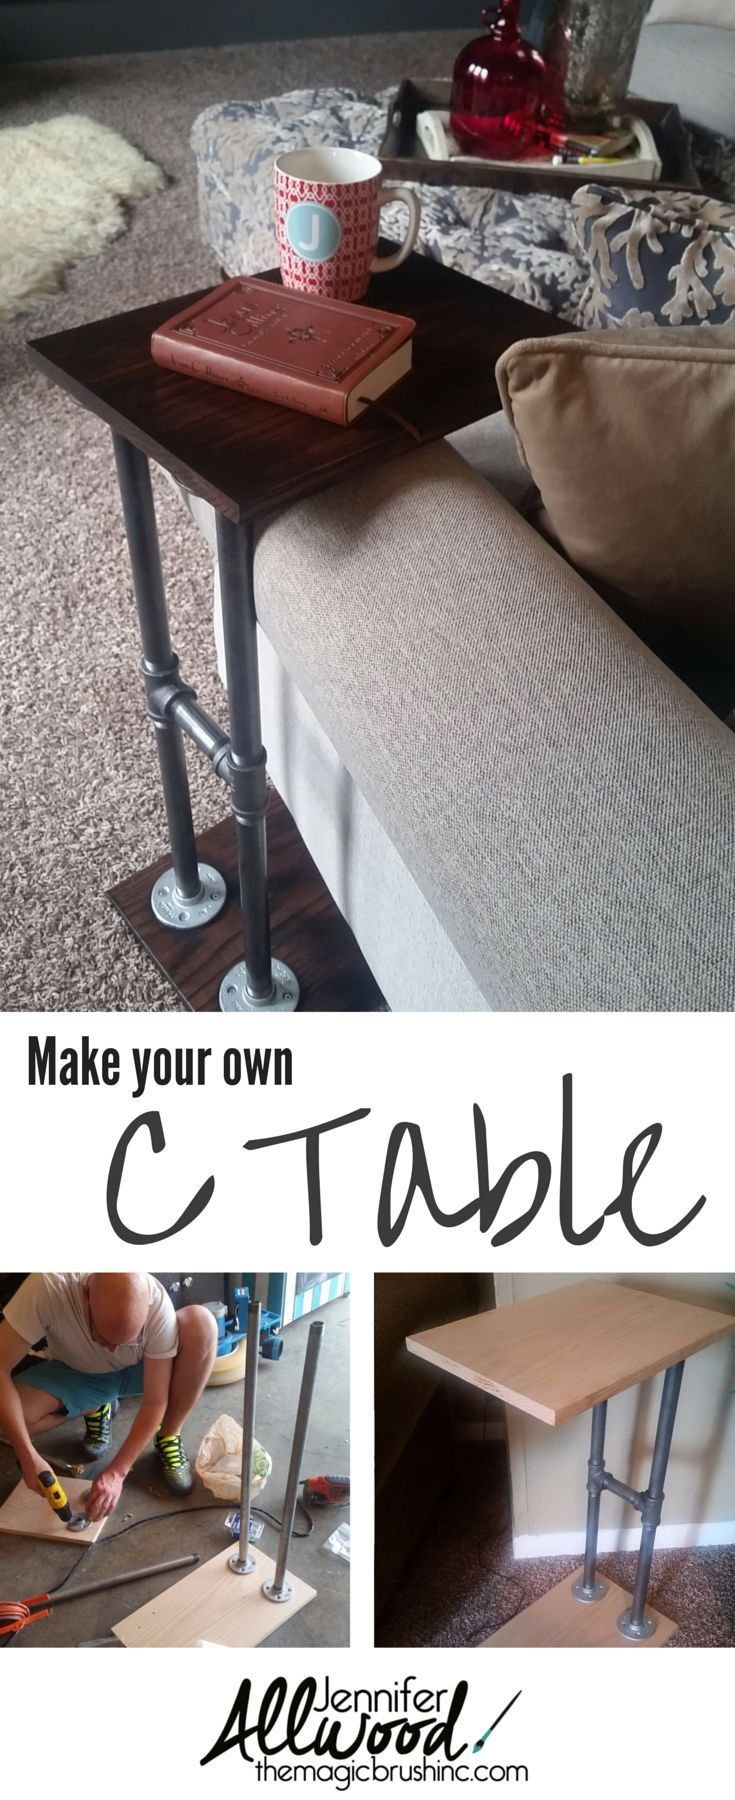 Info's : You'll never have to reach for that coffee mug again!  Make your own C table for armchairs! We used industrial pipes, flanges and stained oak wood pieces. Get instructions from Jennifer Allwood at TheMagicBrushinc.com #diy #diyhomedecor #armchair #homeprojects #howto #homedecor